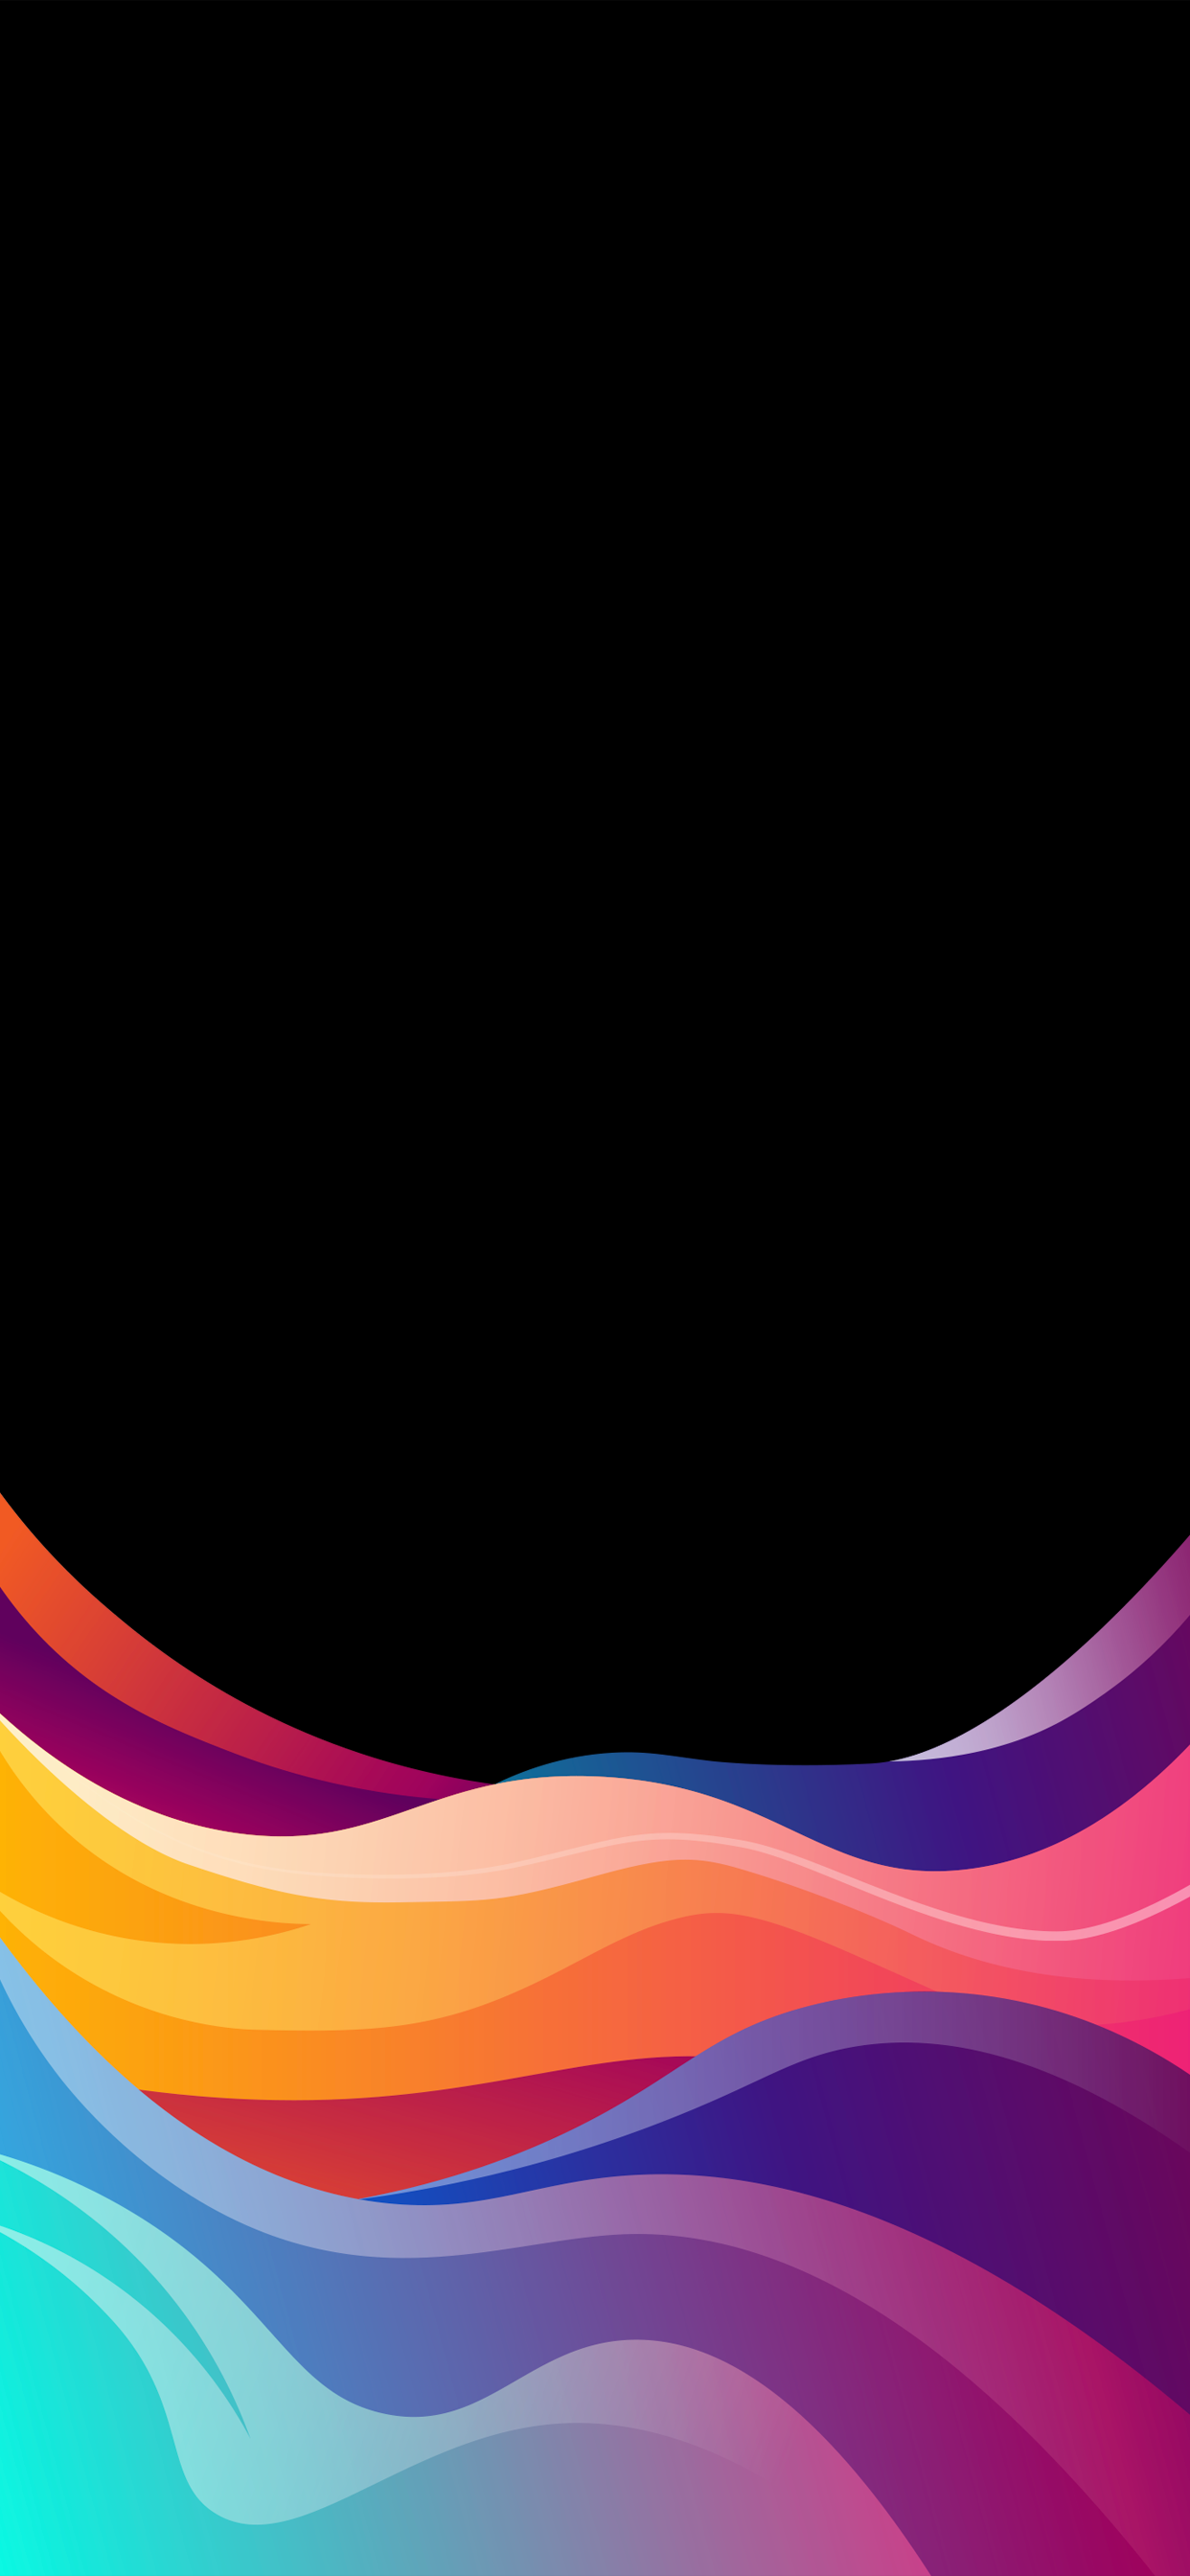 5 Awesome Iphone 8 Iphone Xs Or Iphone Xr Wallpapers 59 Art Wallpaper Iphone Iphone Wallpaper Iphone Wallpaper Modern